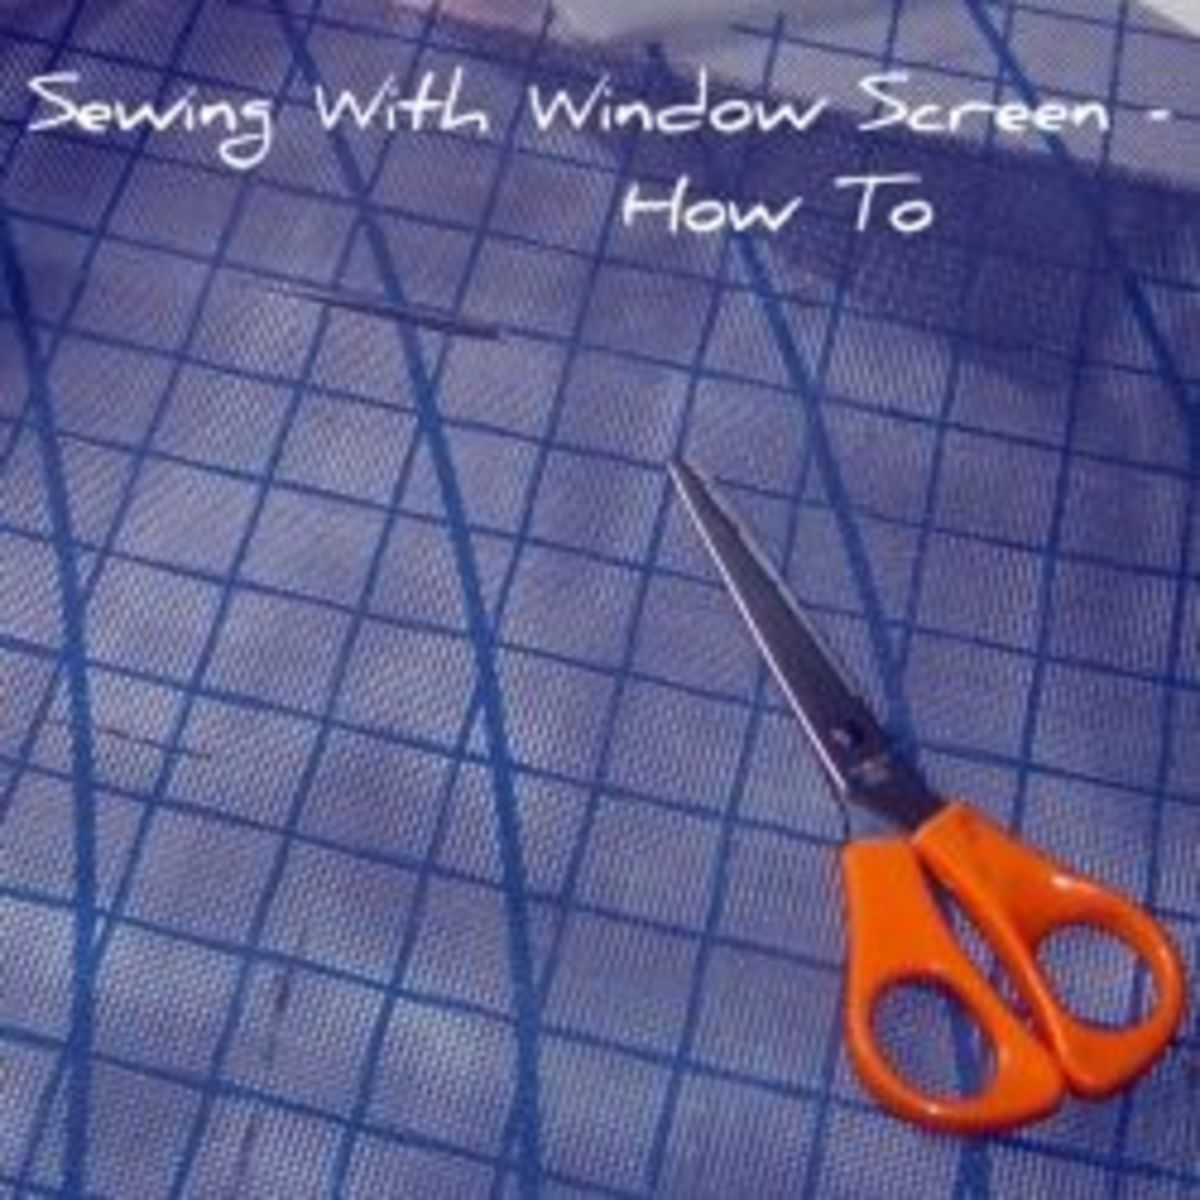 Sewing With Window Screen - How To   HubPages